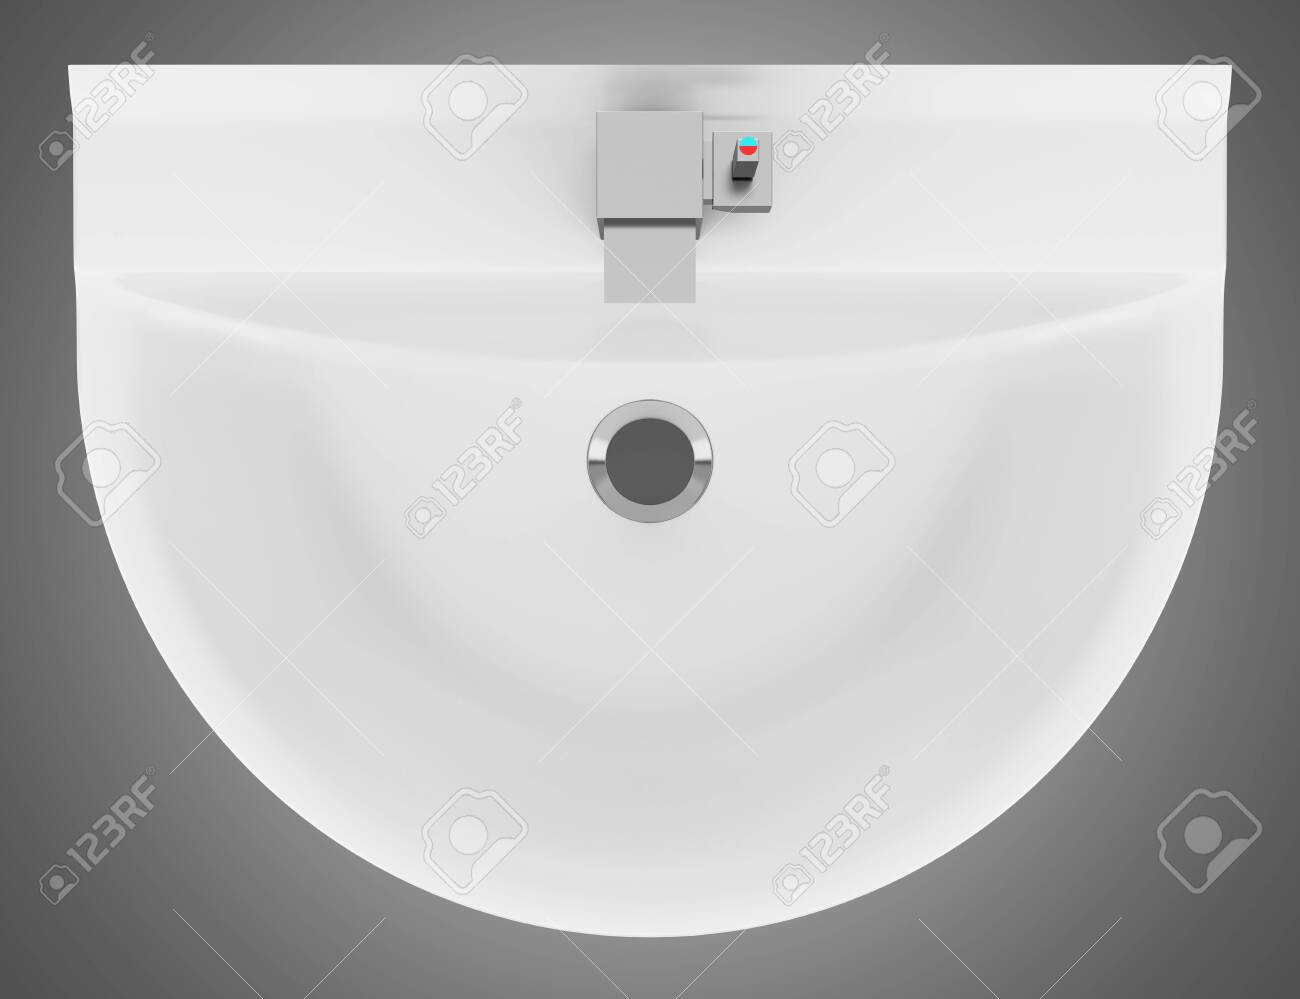 Bathroom sink top view - Stock Photo Top View Of Ceramic Bathroom Sink Isolated On Gray Background